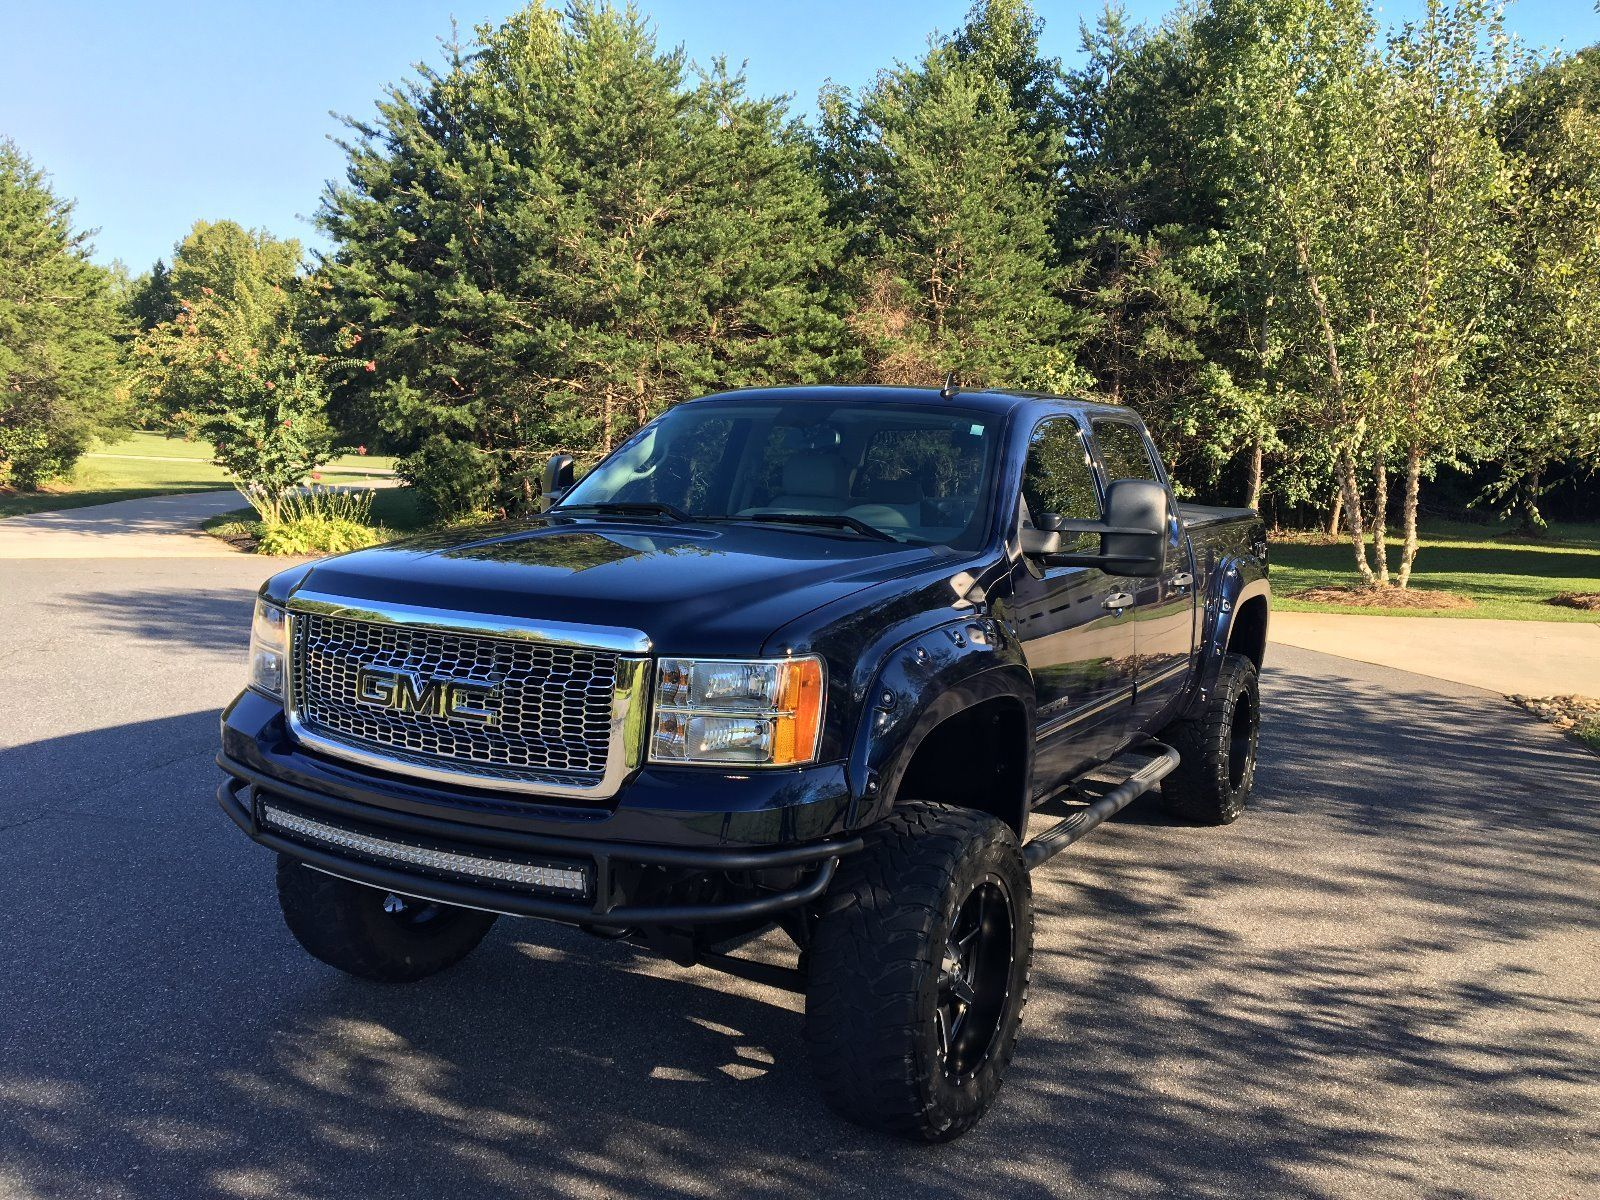 blacked out 2012 gmc sierra 1500 pickup for sale. Black Bedroom Furniture Sets. Home Design Ideas